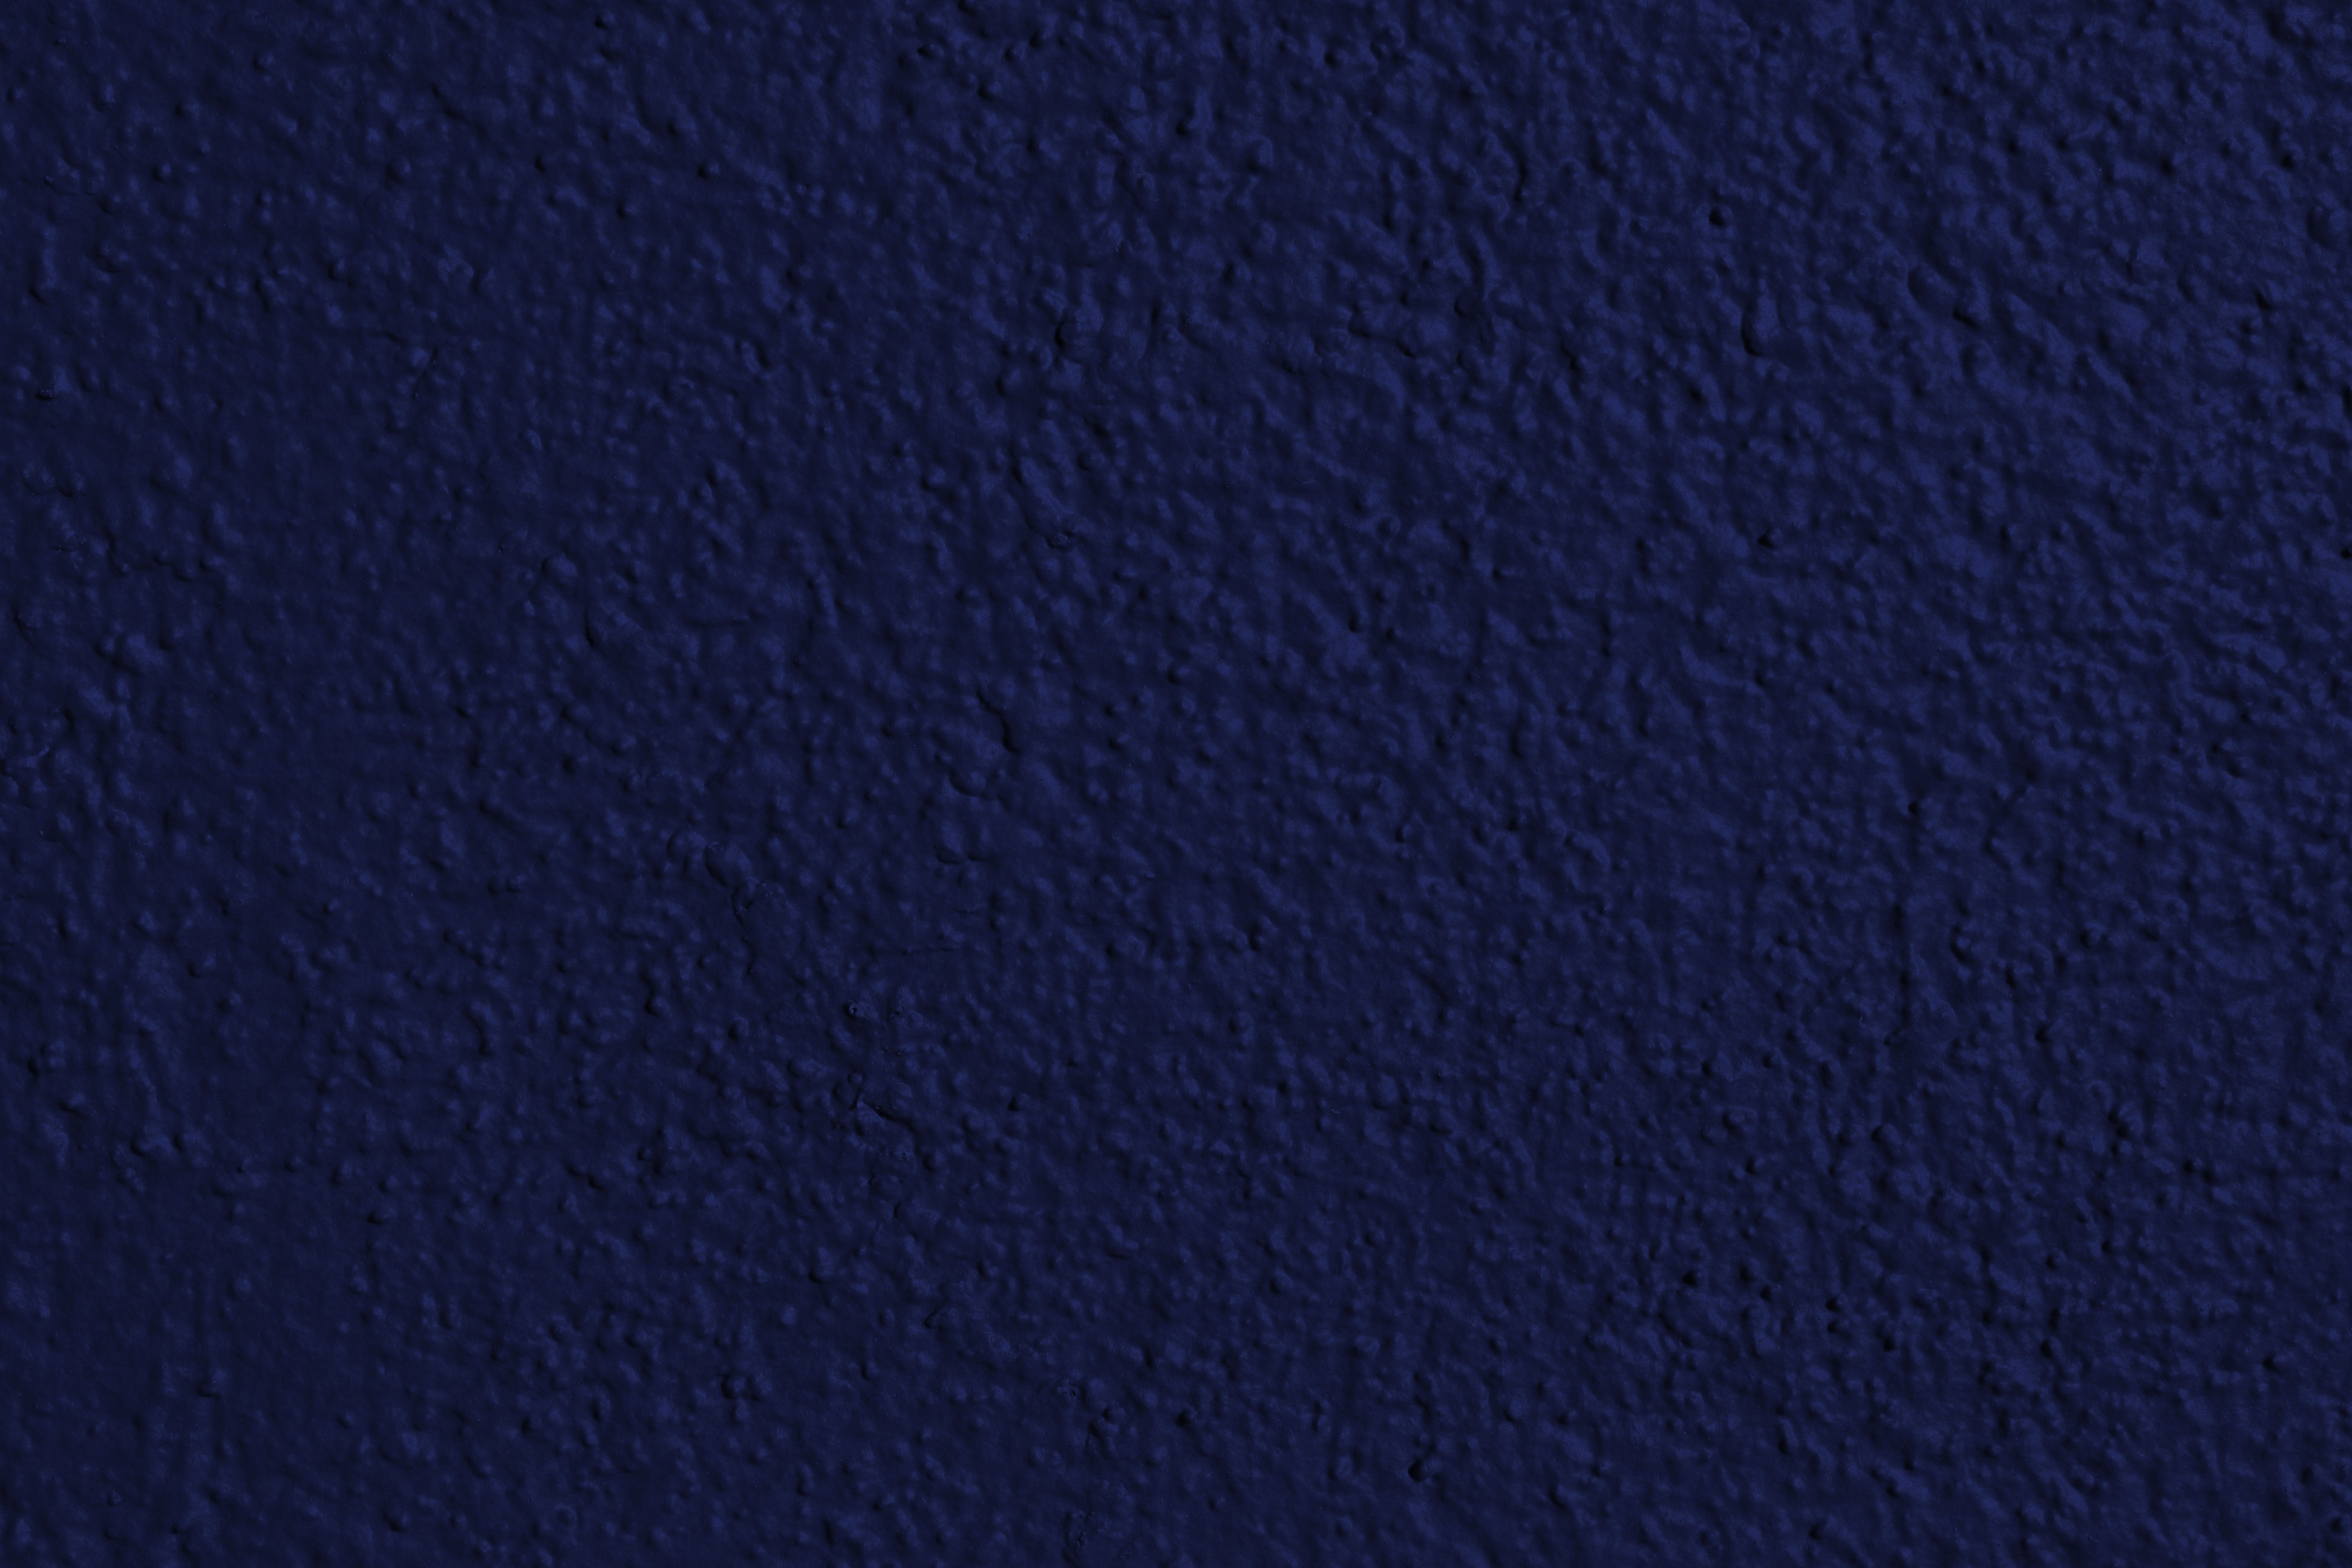 Navy Blue Painted Wall Texture Picture Photograph Photos 3888x2592